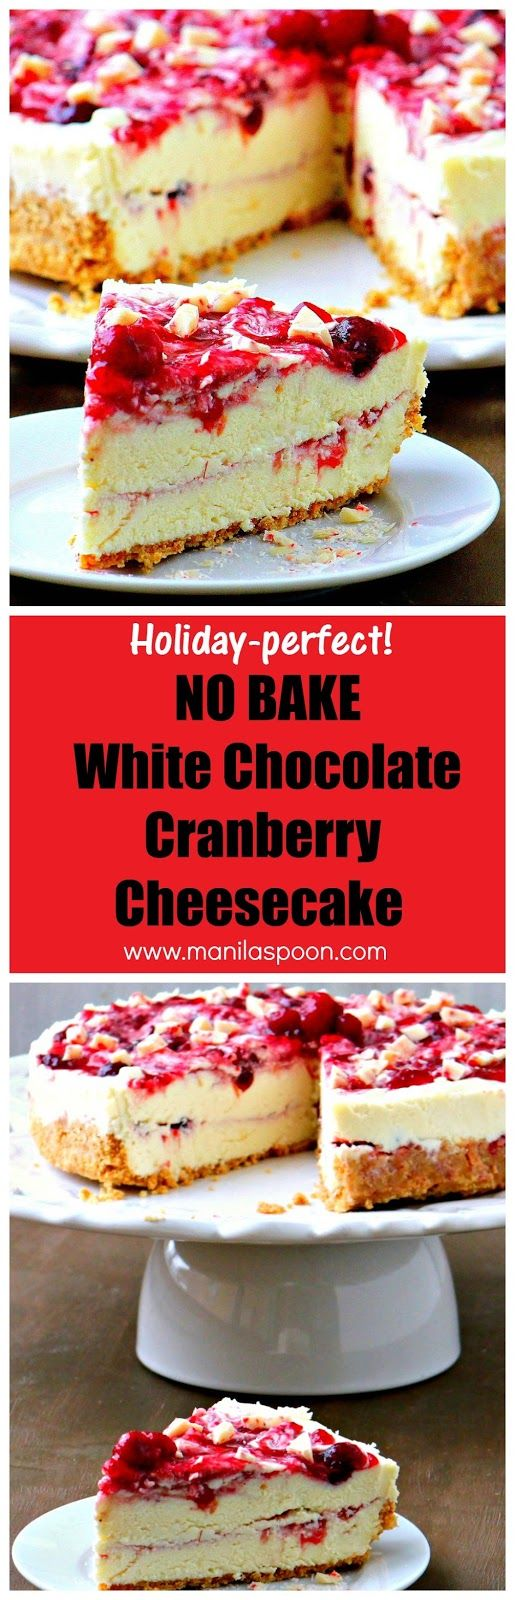 The perfect dessert for The holidays! Use fresh or frozen cranberries to make this No Bake White Chocolate Cranberry Cheesecake - fruity, creamy, chocolaty and totally delicious! | manilaspoon.com